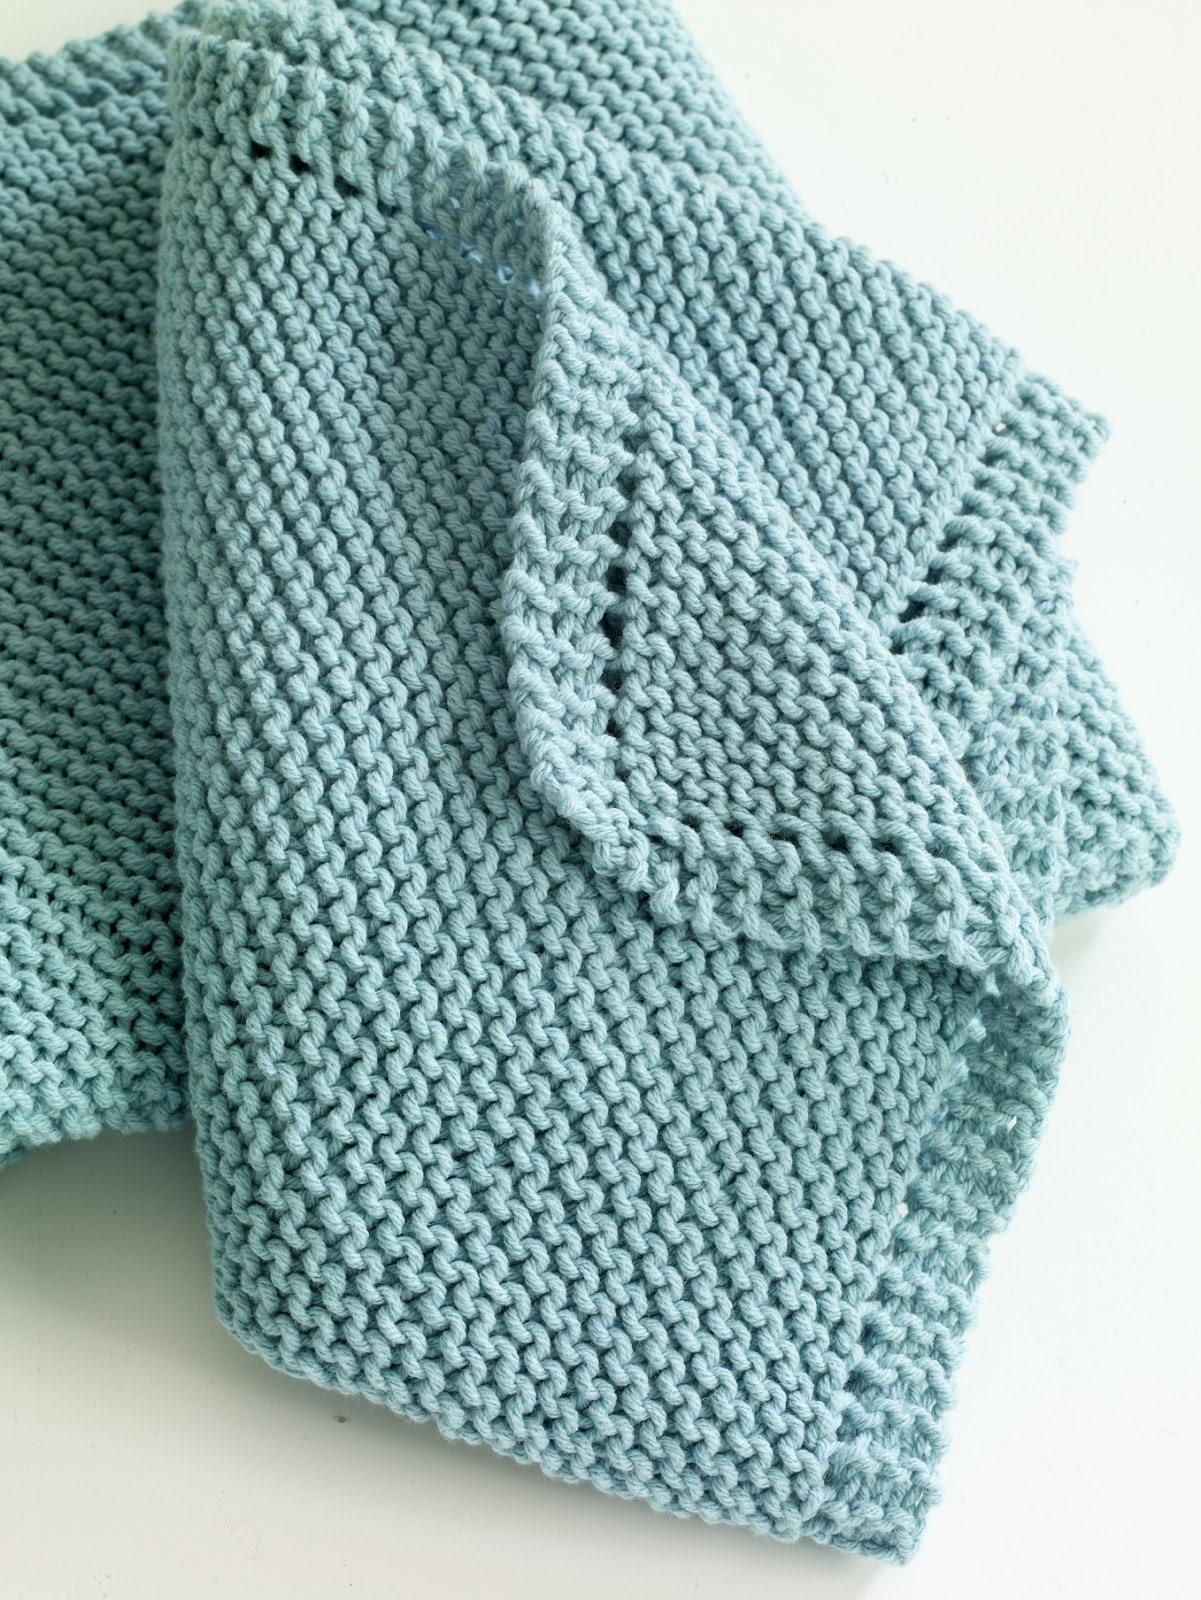 Easy Knitting Patterns For Baby Blankets For Beginners : Serenity knits december